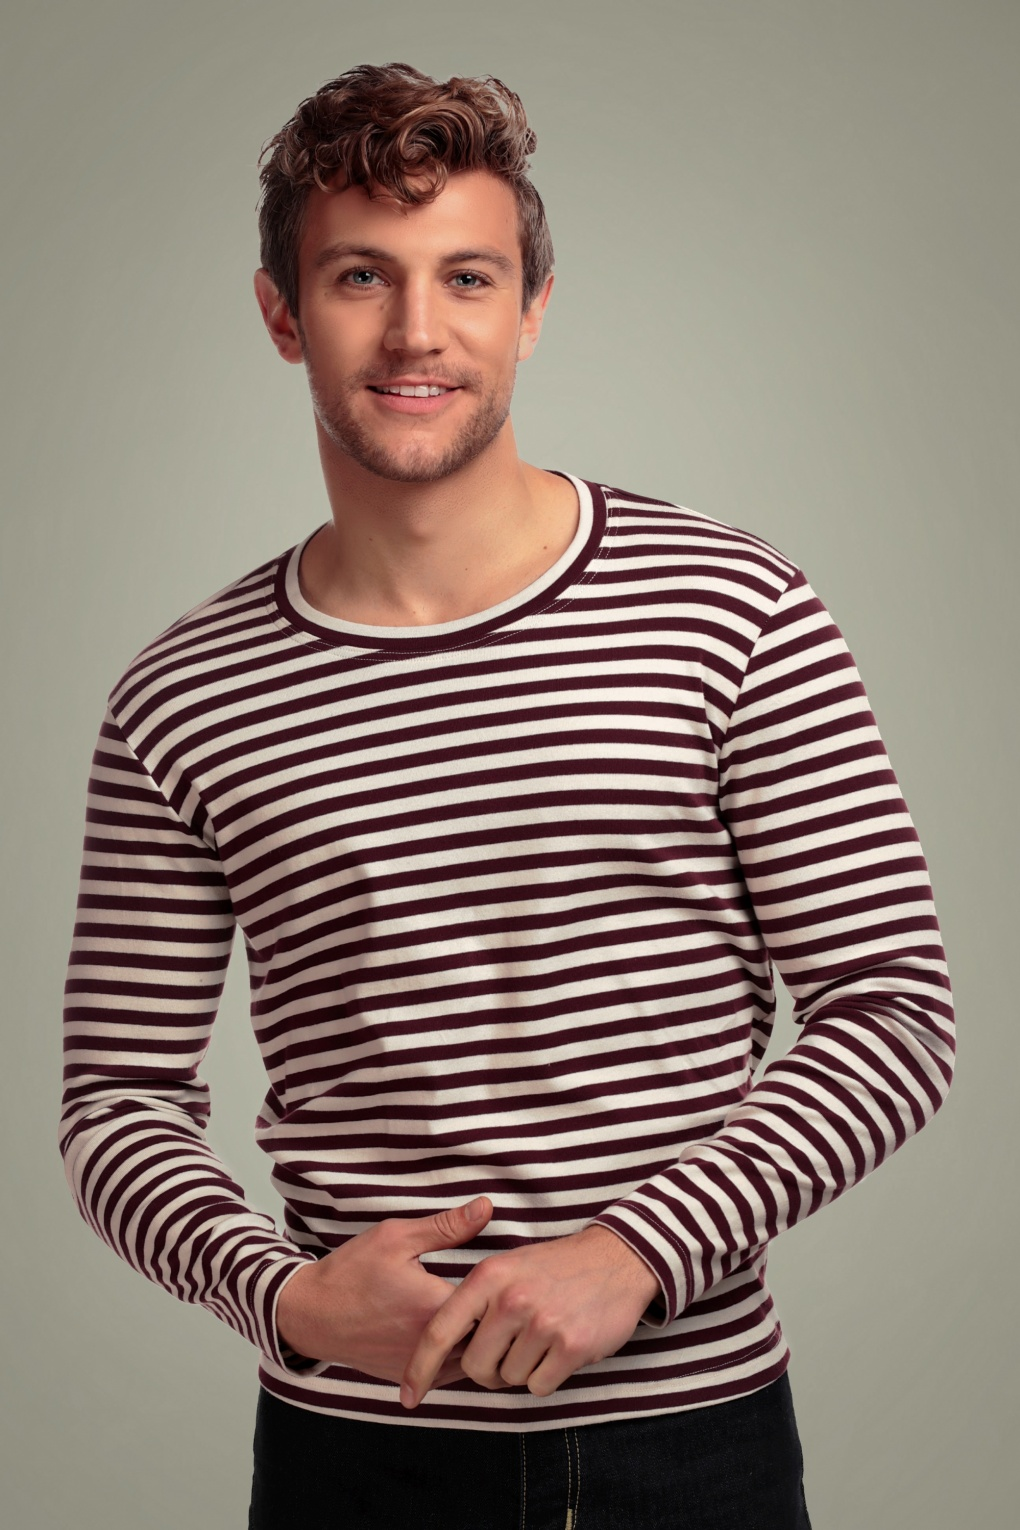 1940s Style Mens Shirts, Sweaters, Vests 50s Jim Striped Long Sleeved T-Shirt in Burgundy £21.34 AT vintagedancer.com